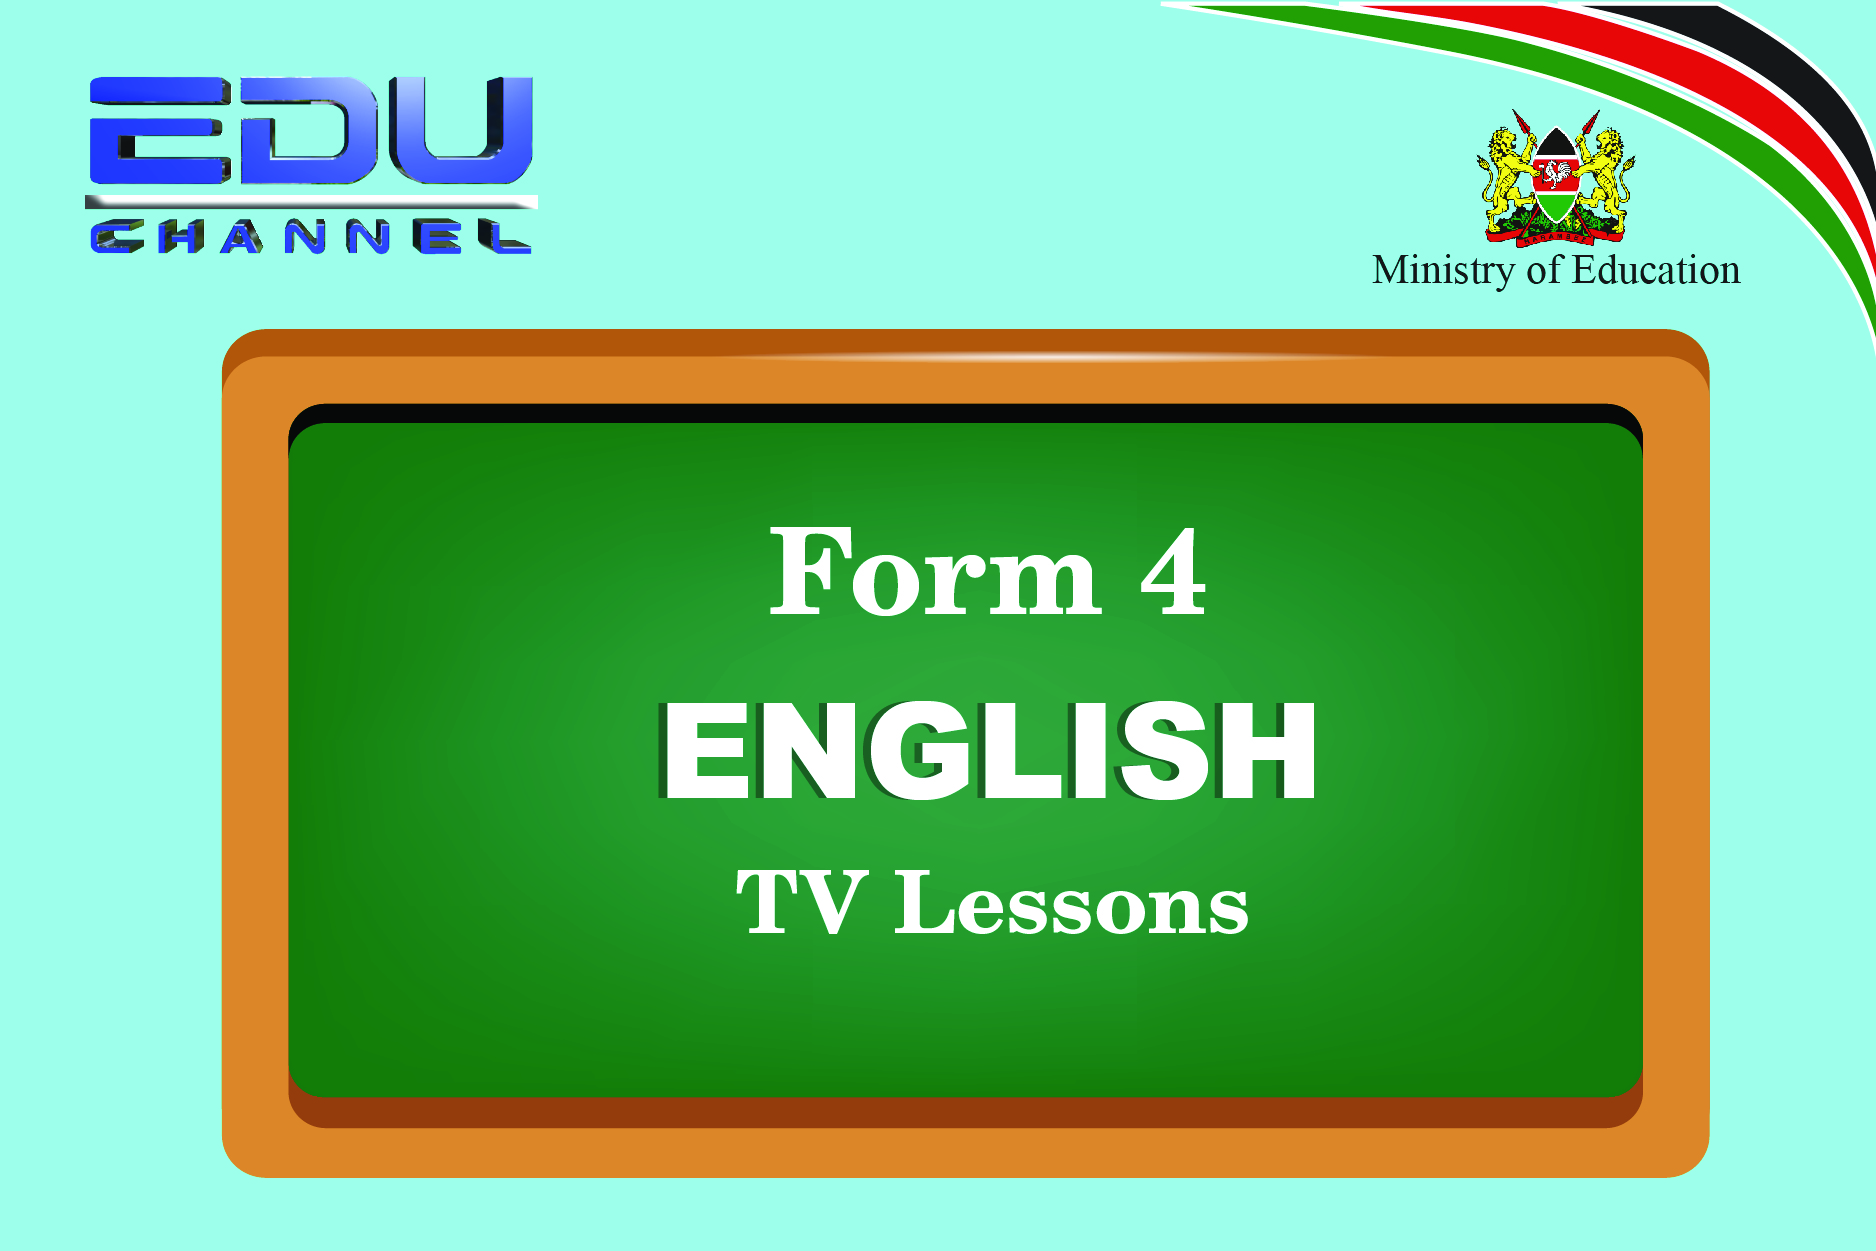 Form 4 English  Lesson 7: Adjectives - functions of adjectives